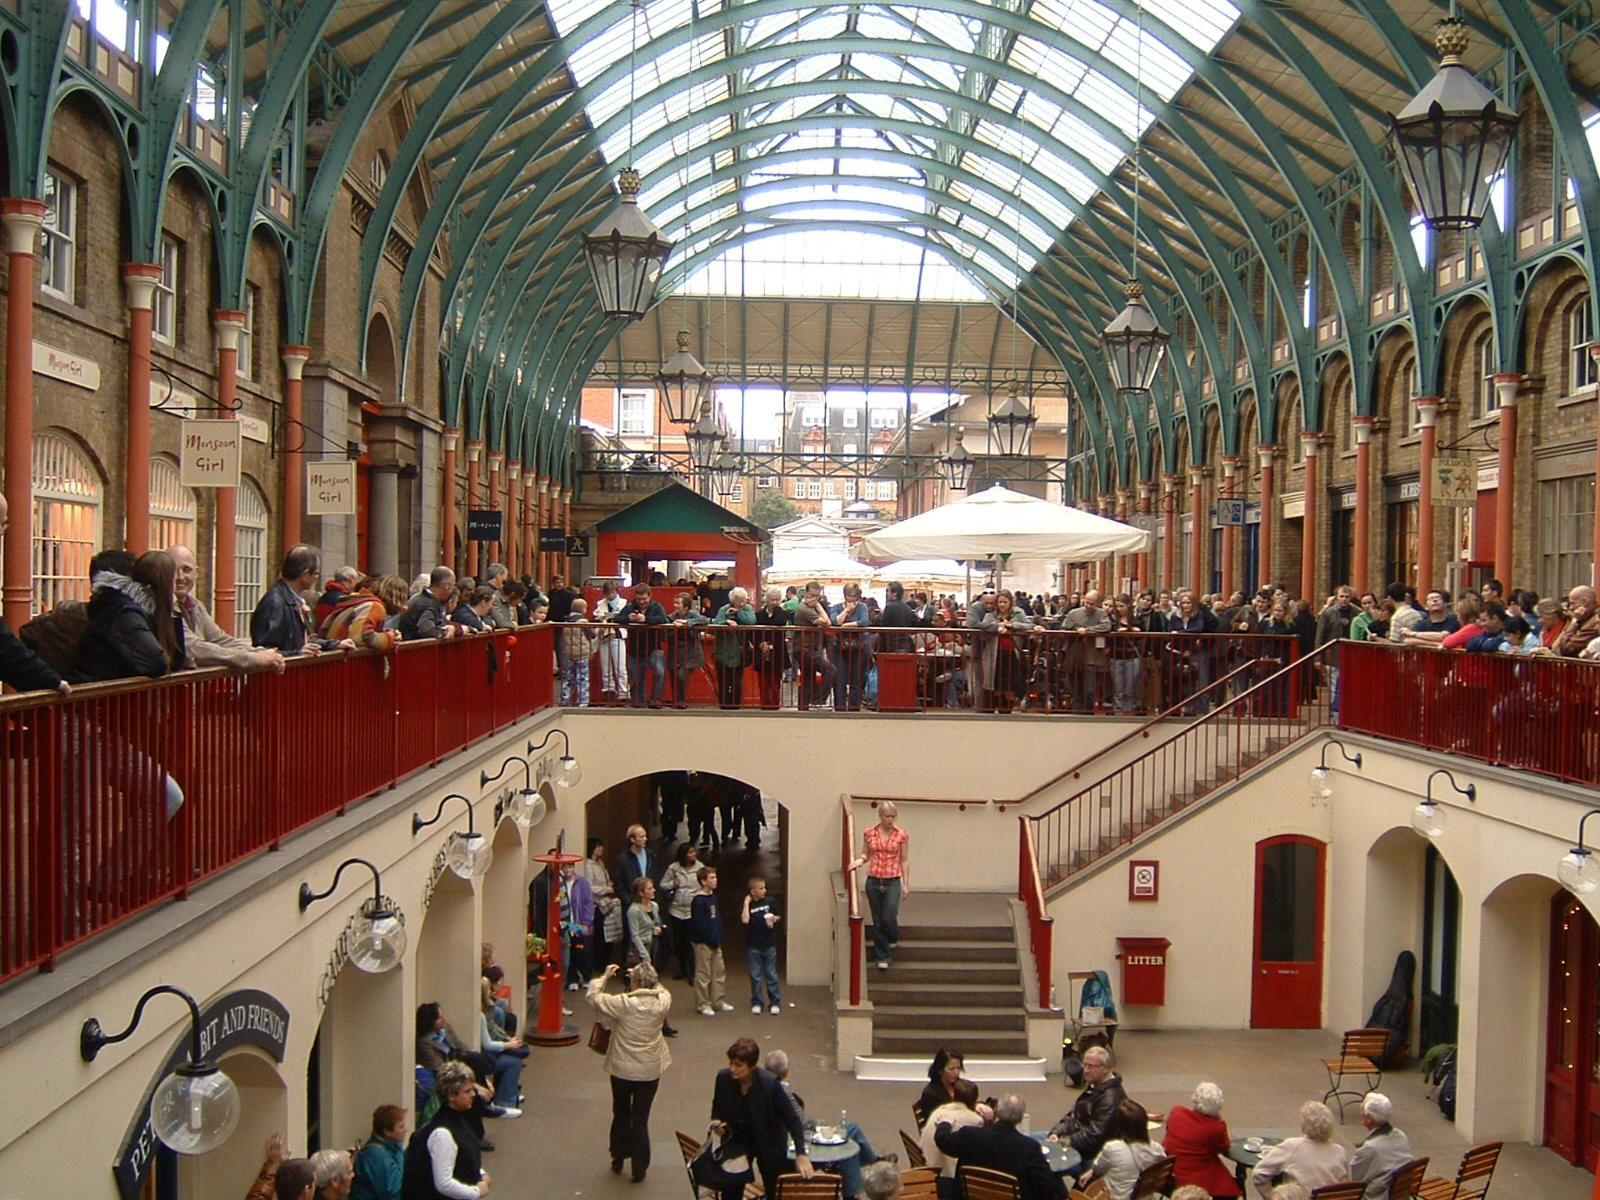 view-covent-garden-market-images-home-design-modern-in-covent-garden ...